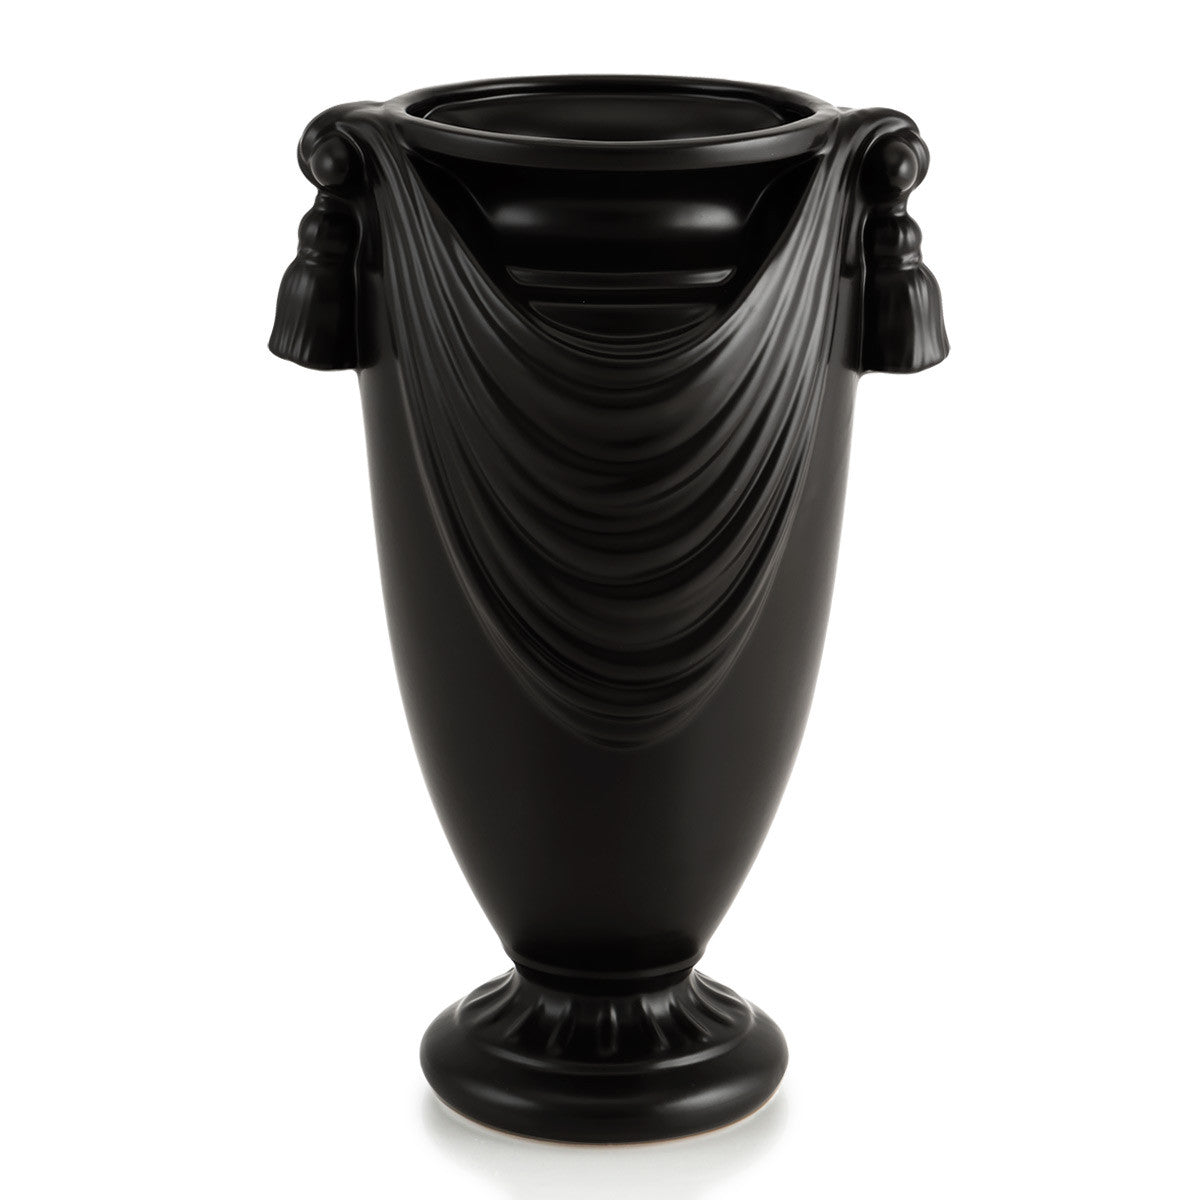 Black Ceramic vase with drape